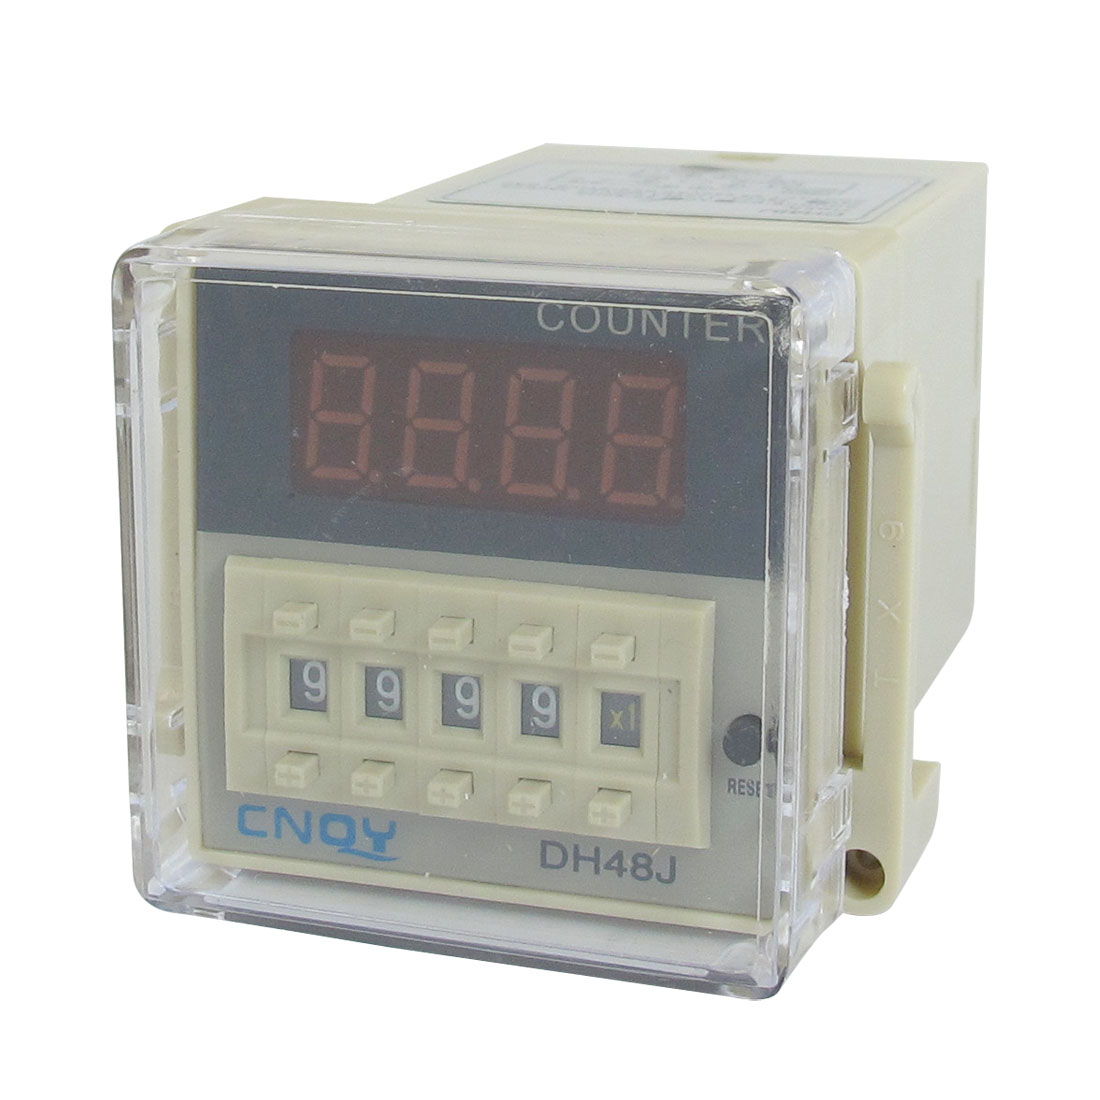 DH48J 1-999900 Digital Counter Relay LED Display AC/DC 24V 50/60Hz